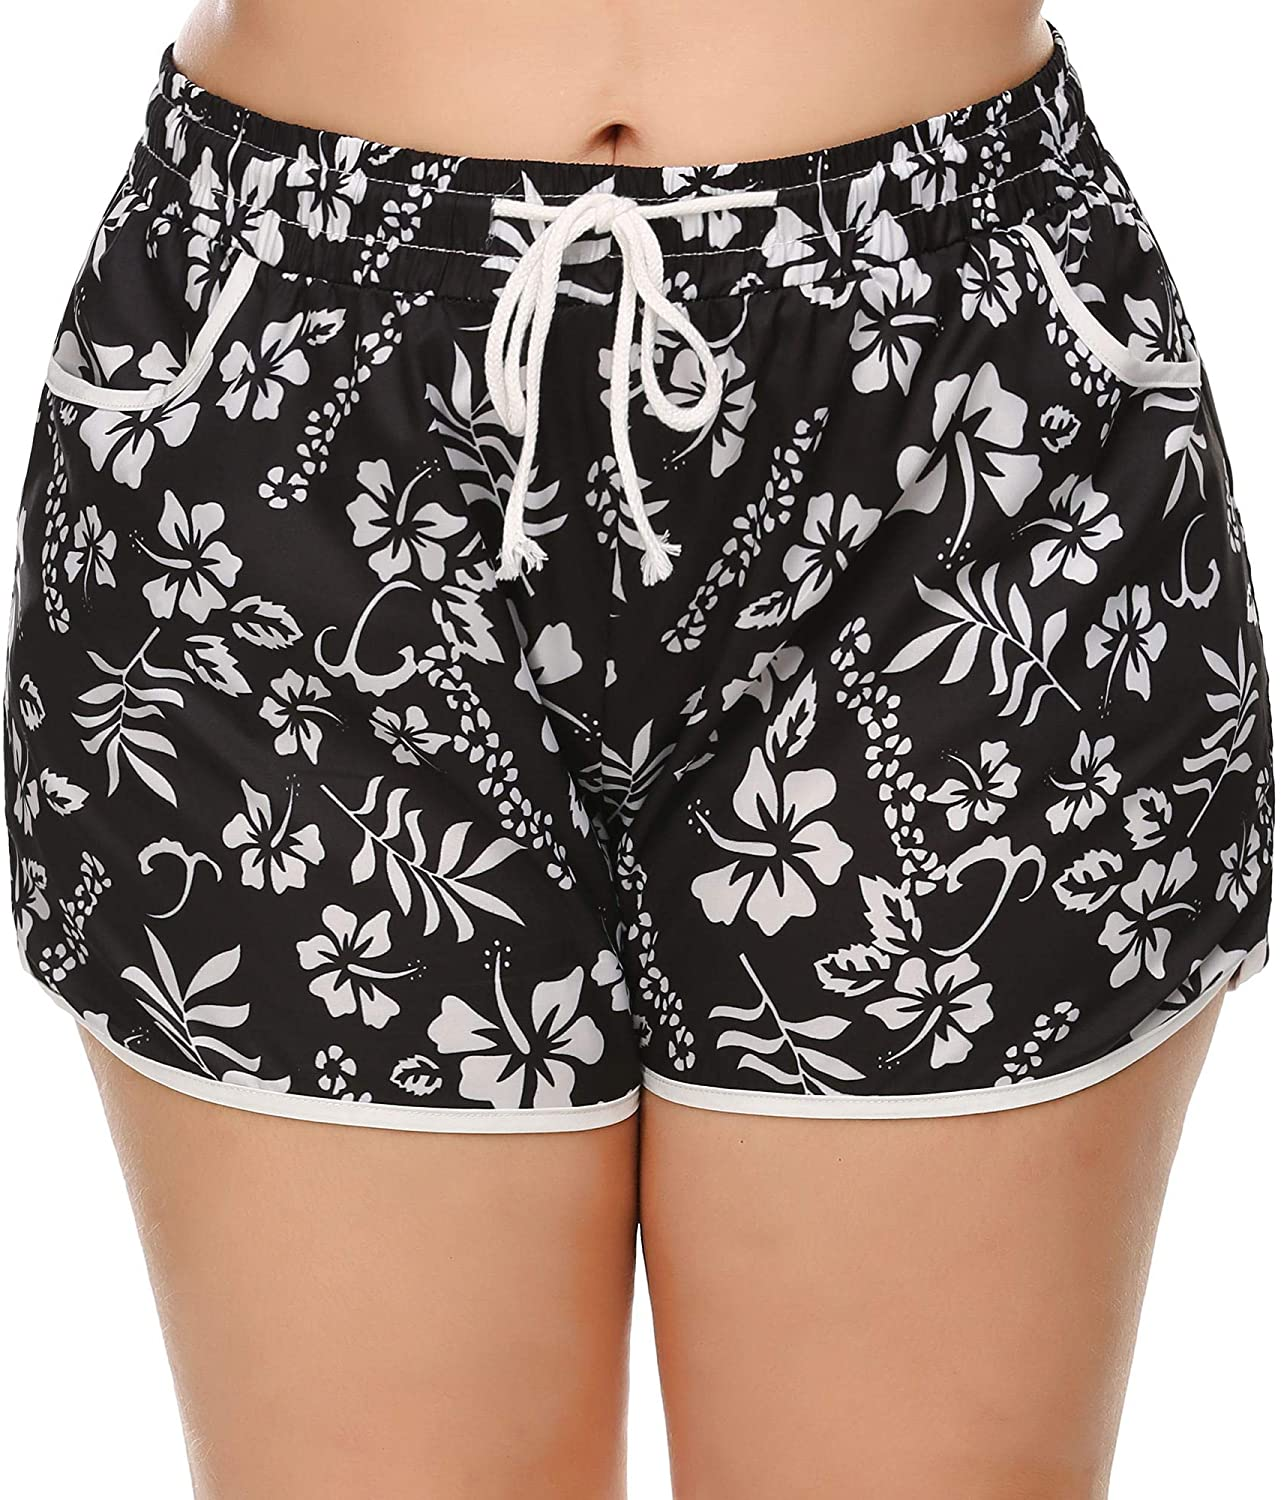 INVOLAND Womens Plus Size Quick Dry Boardshort Swimming Trunks Tropical Volley Beach Shorts with Pockets